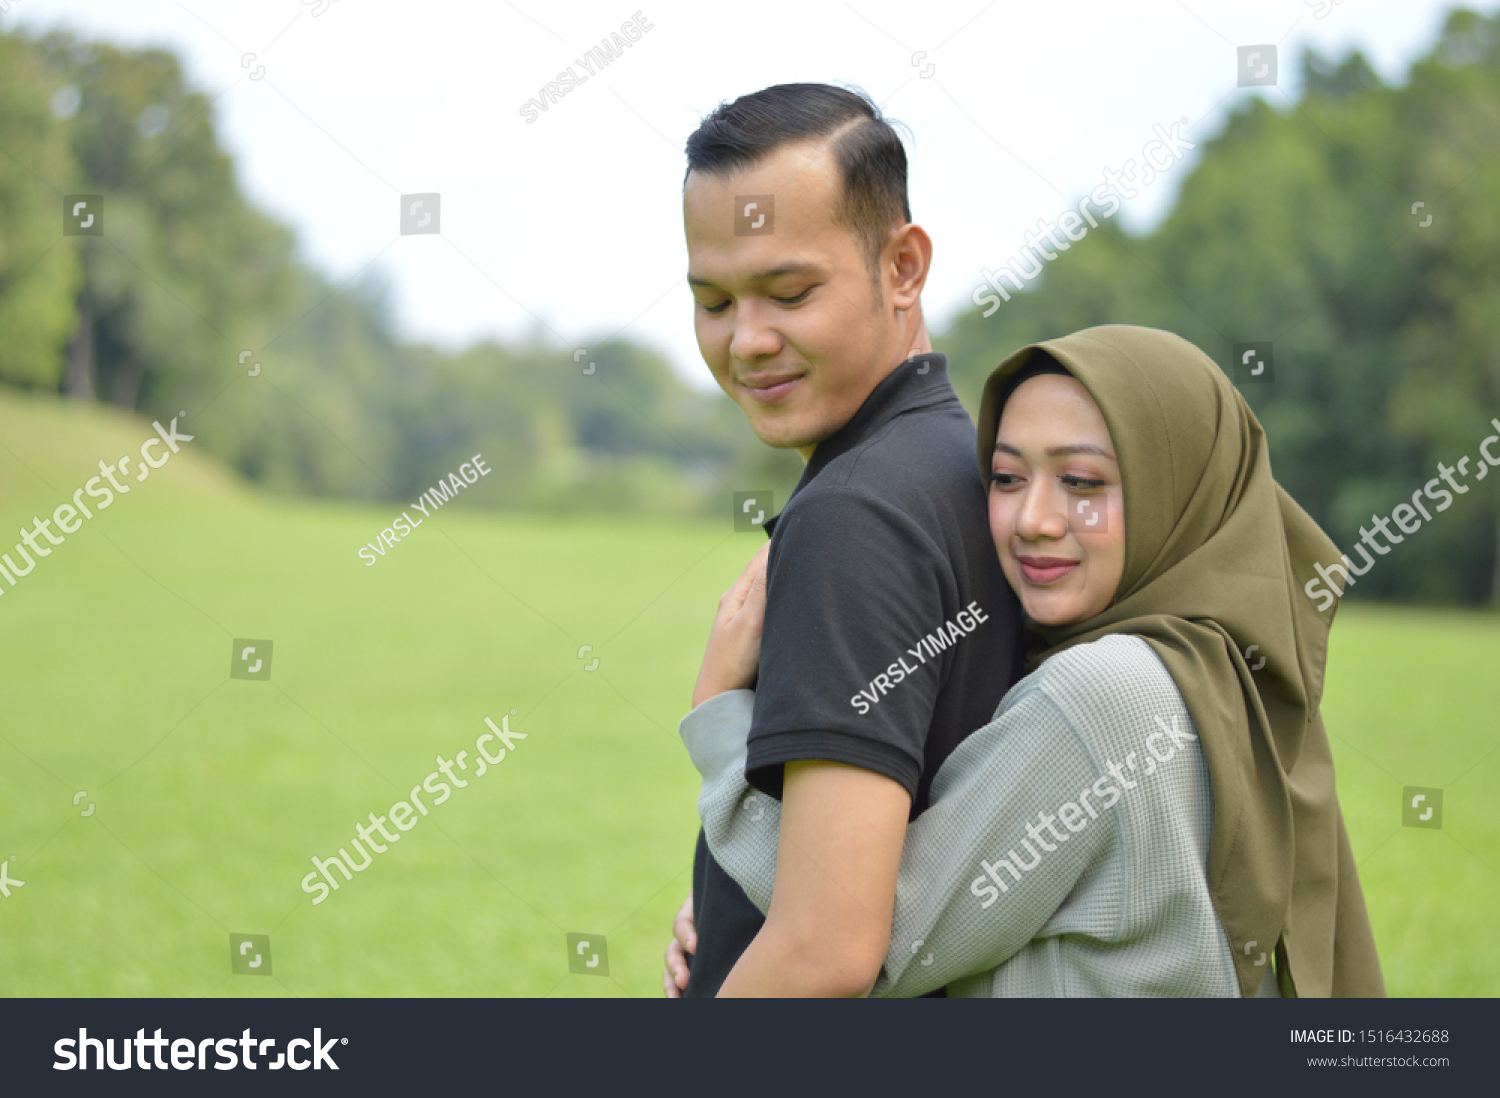 3000+ vectors, stock photos & psd files. Lovely Asian Muslim Young Couple Embracing Stock Photo Edit Now 1516432688